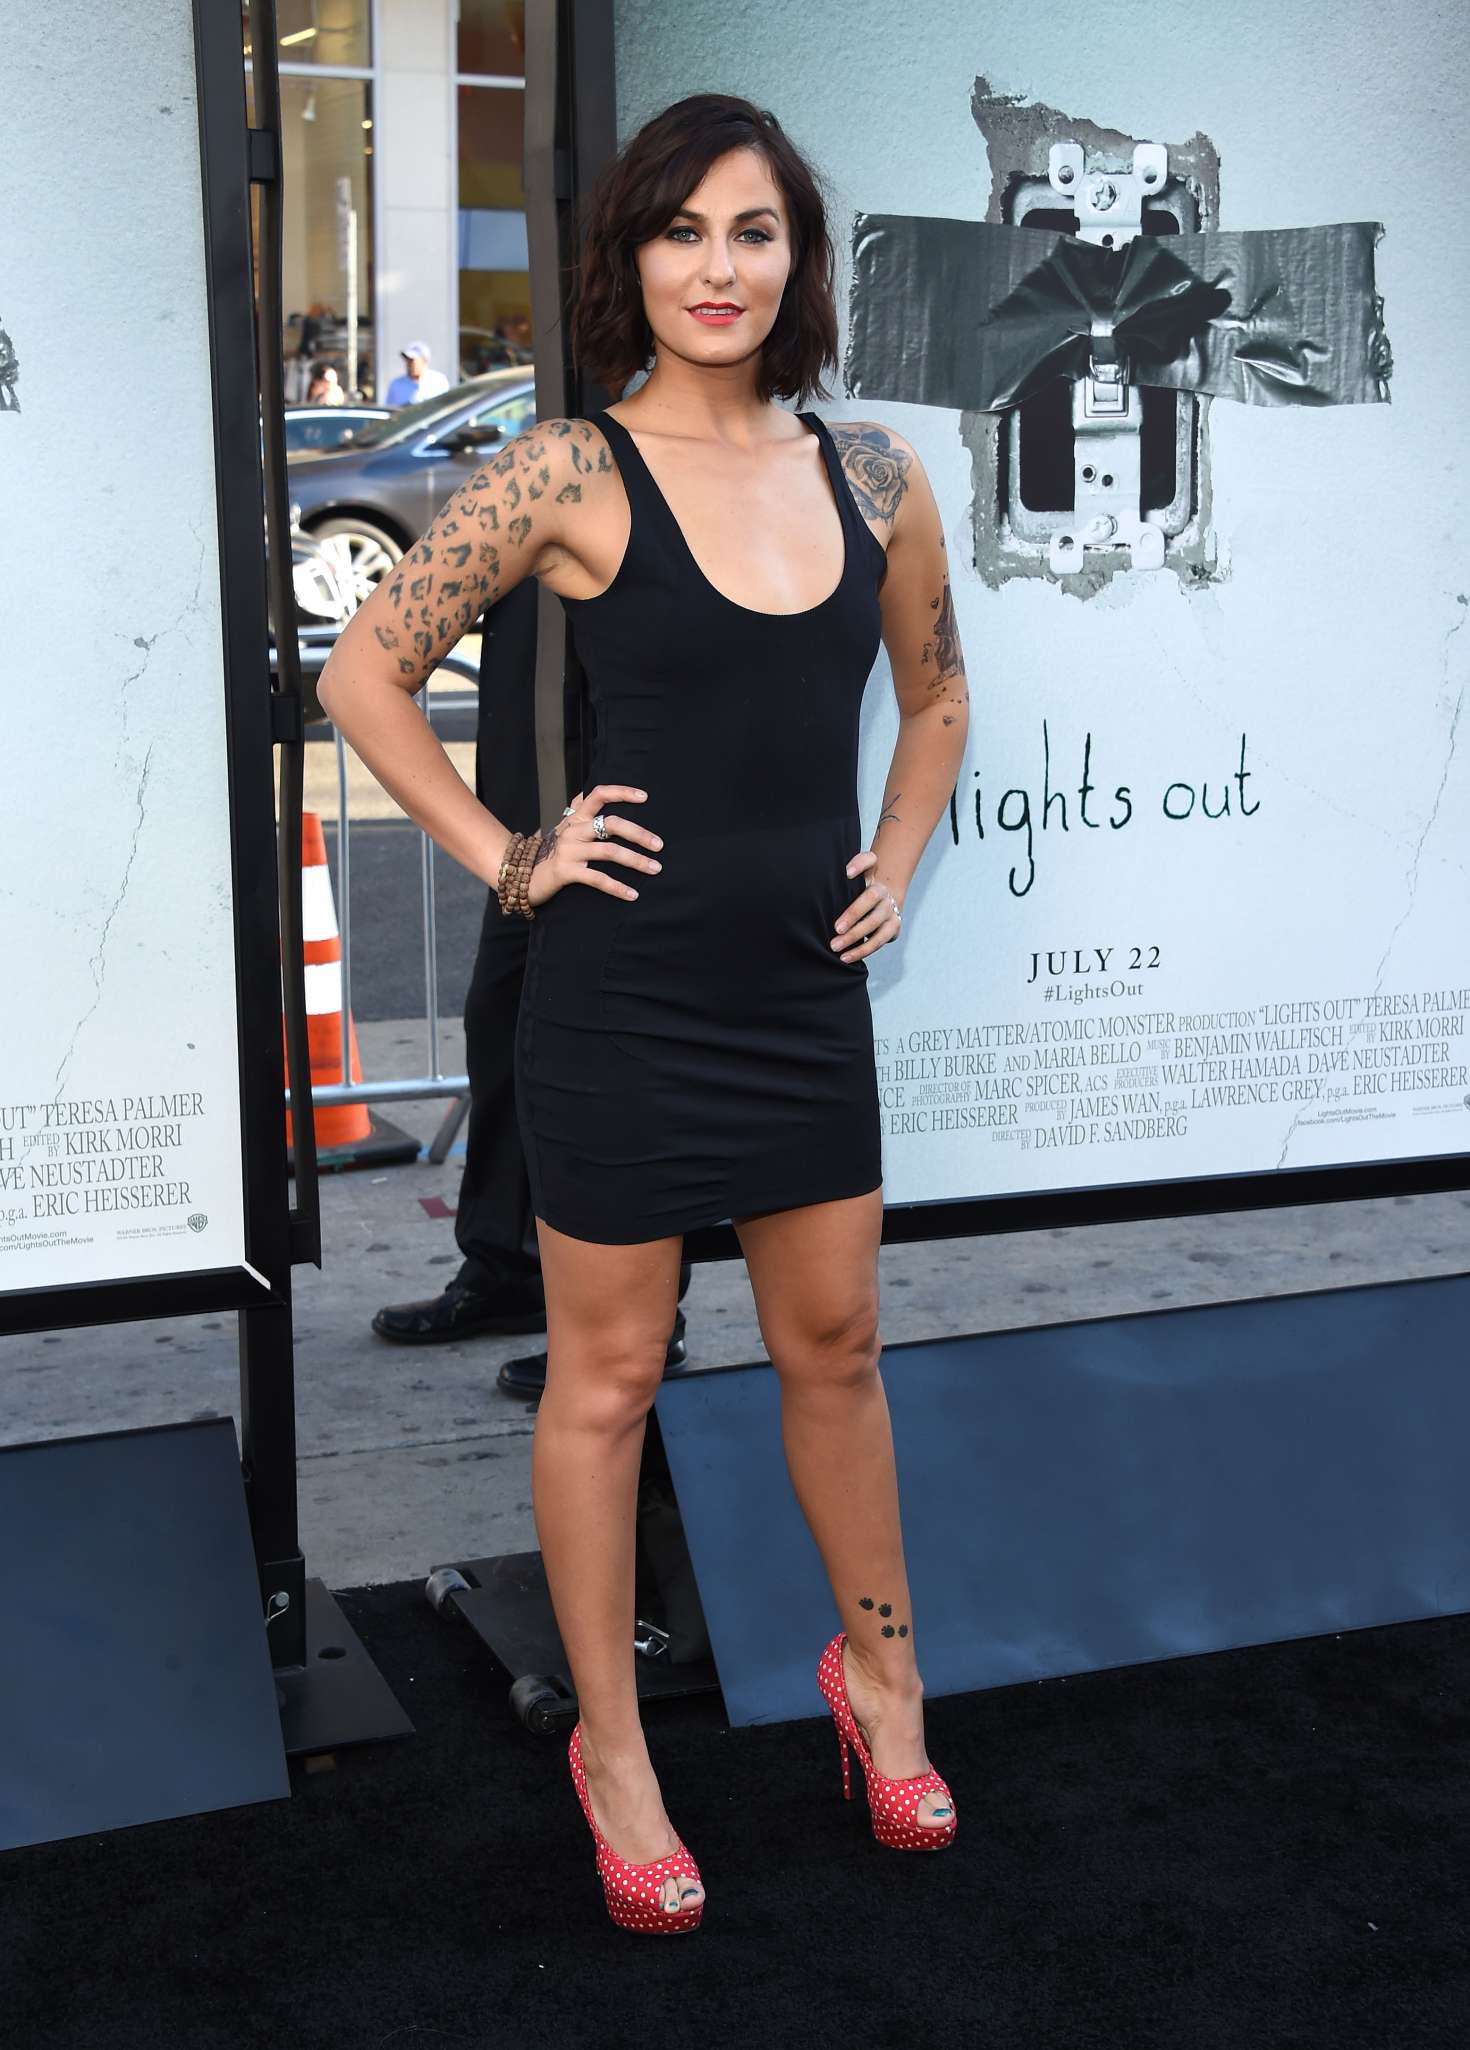 Absolutely Scout taylor compton nake pic